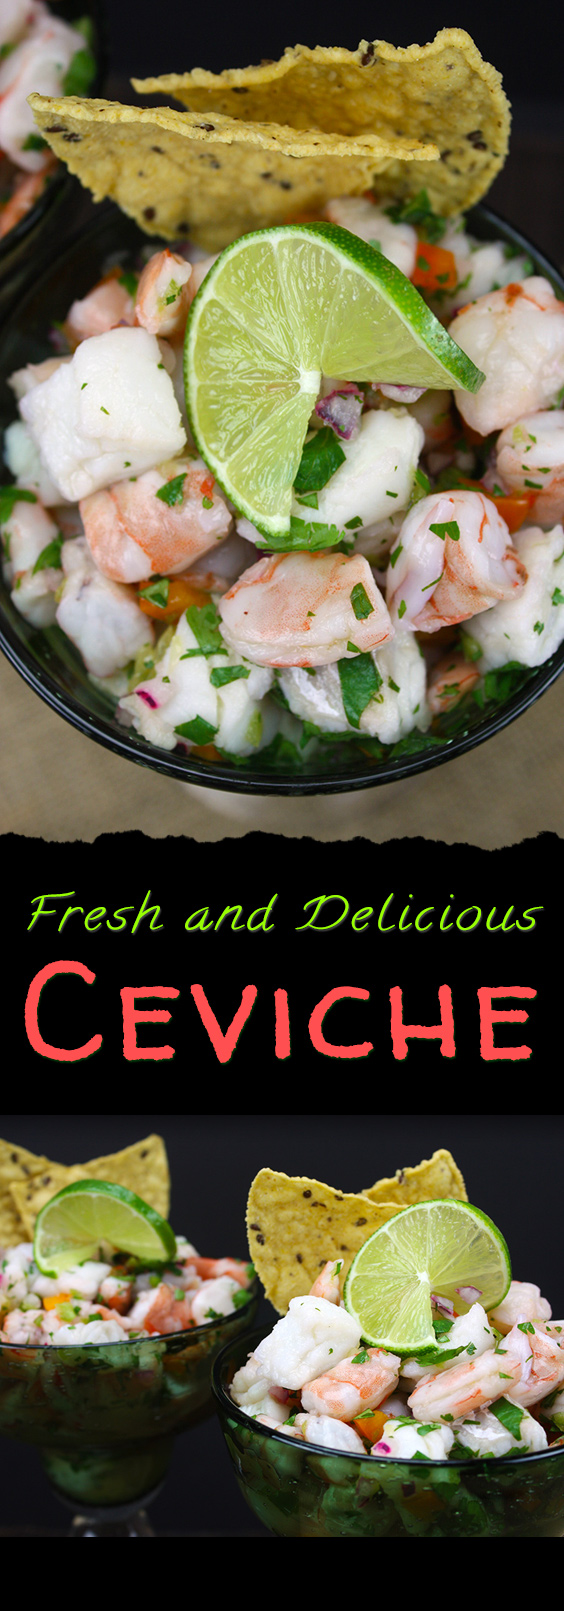 Quick and Fresh Ceviche - Easy, fresh, tangy and light shrimp and cod ceviche. Perfect for summer!  #summer #recipes #shrimp